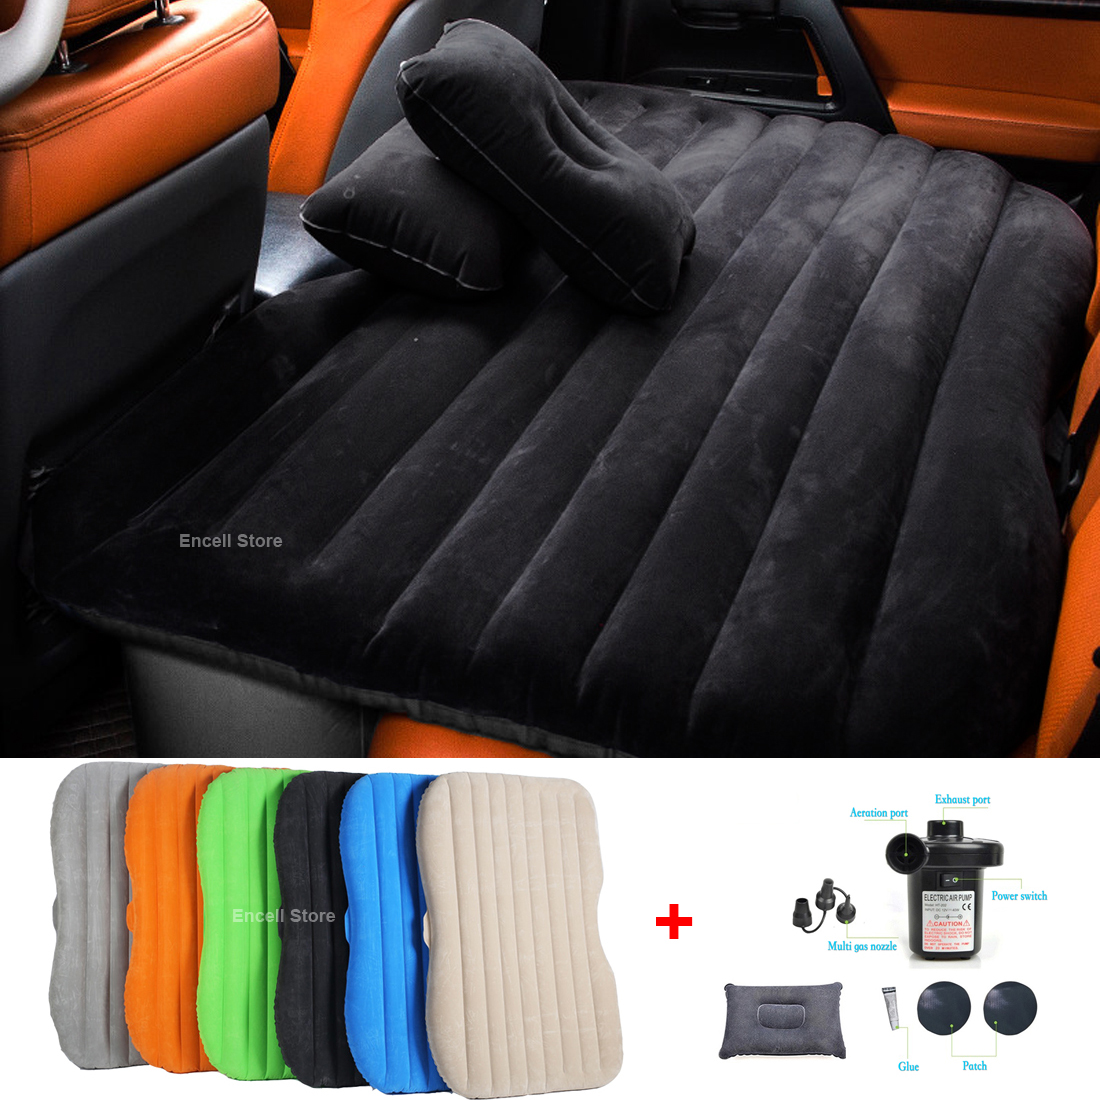 Inflatable Seat Sofa: Inflatable Car Mobile Cushion Seat Sleep Rest Mattress